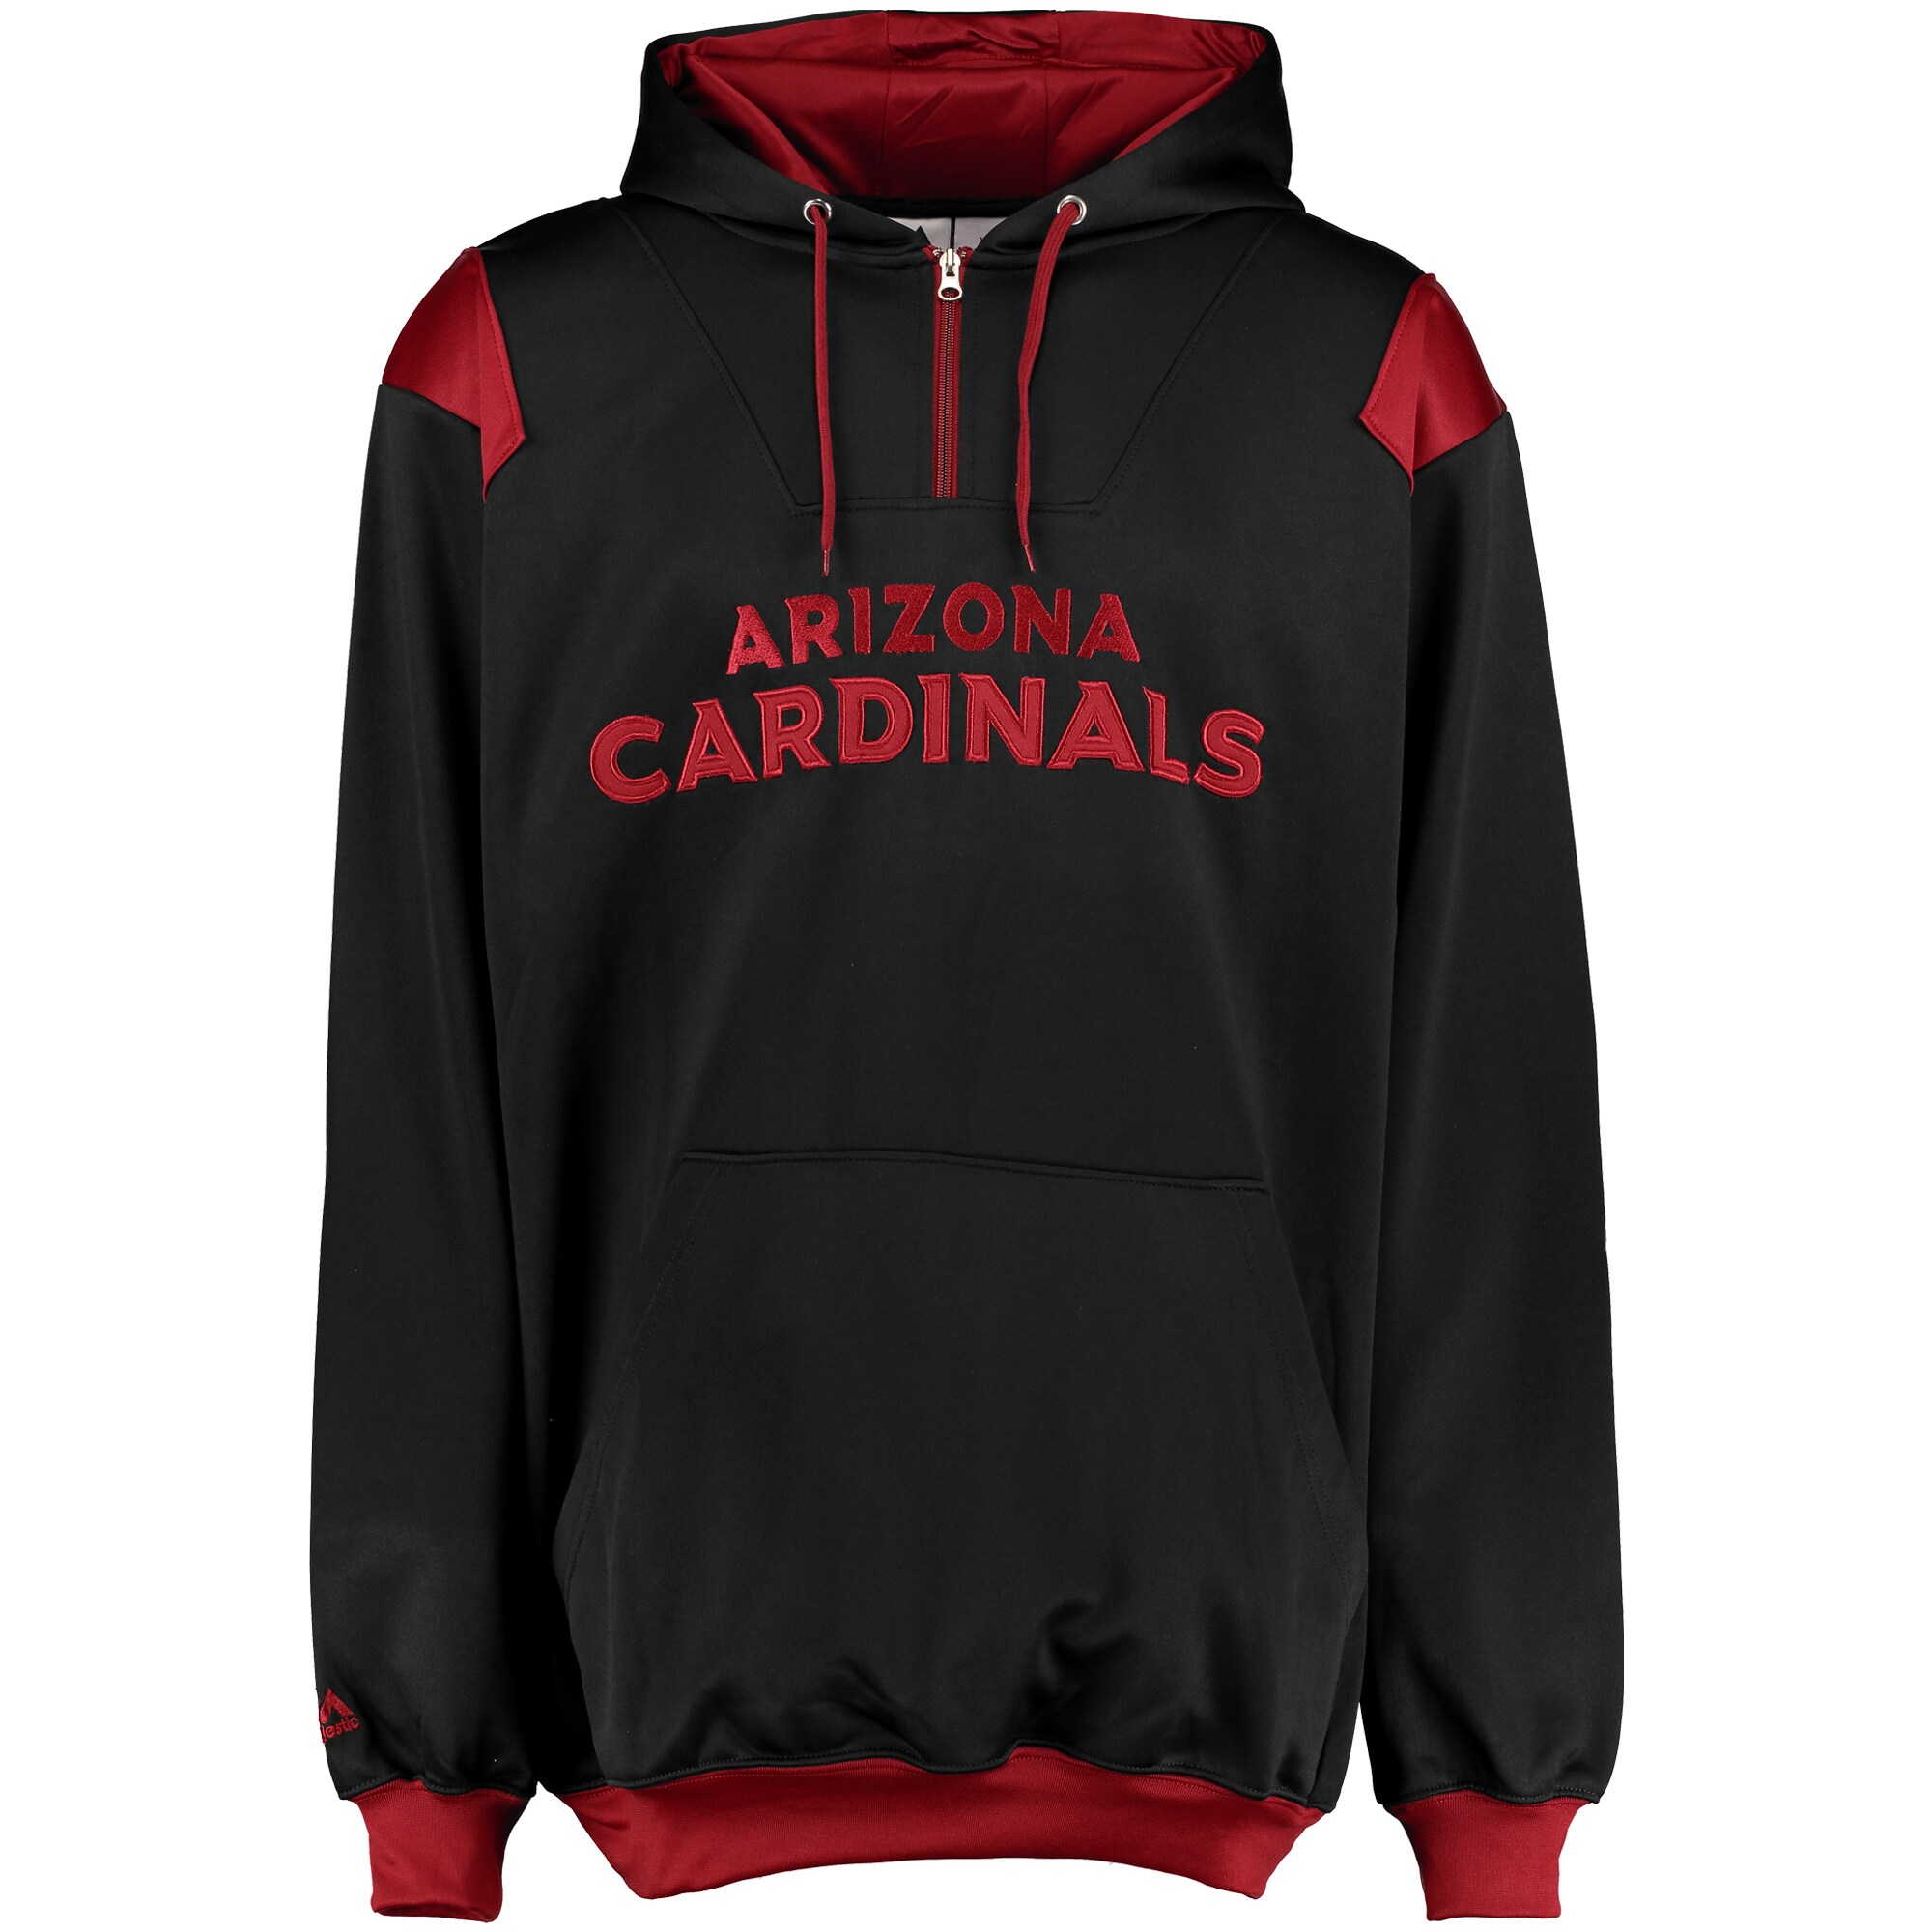 Arizona Cardinals Majestic Big & Tall 1/4-Zip Pullover Hoodie - Black